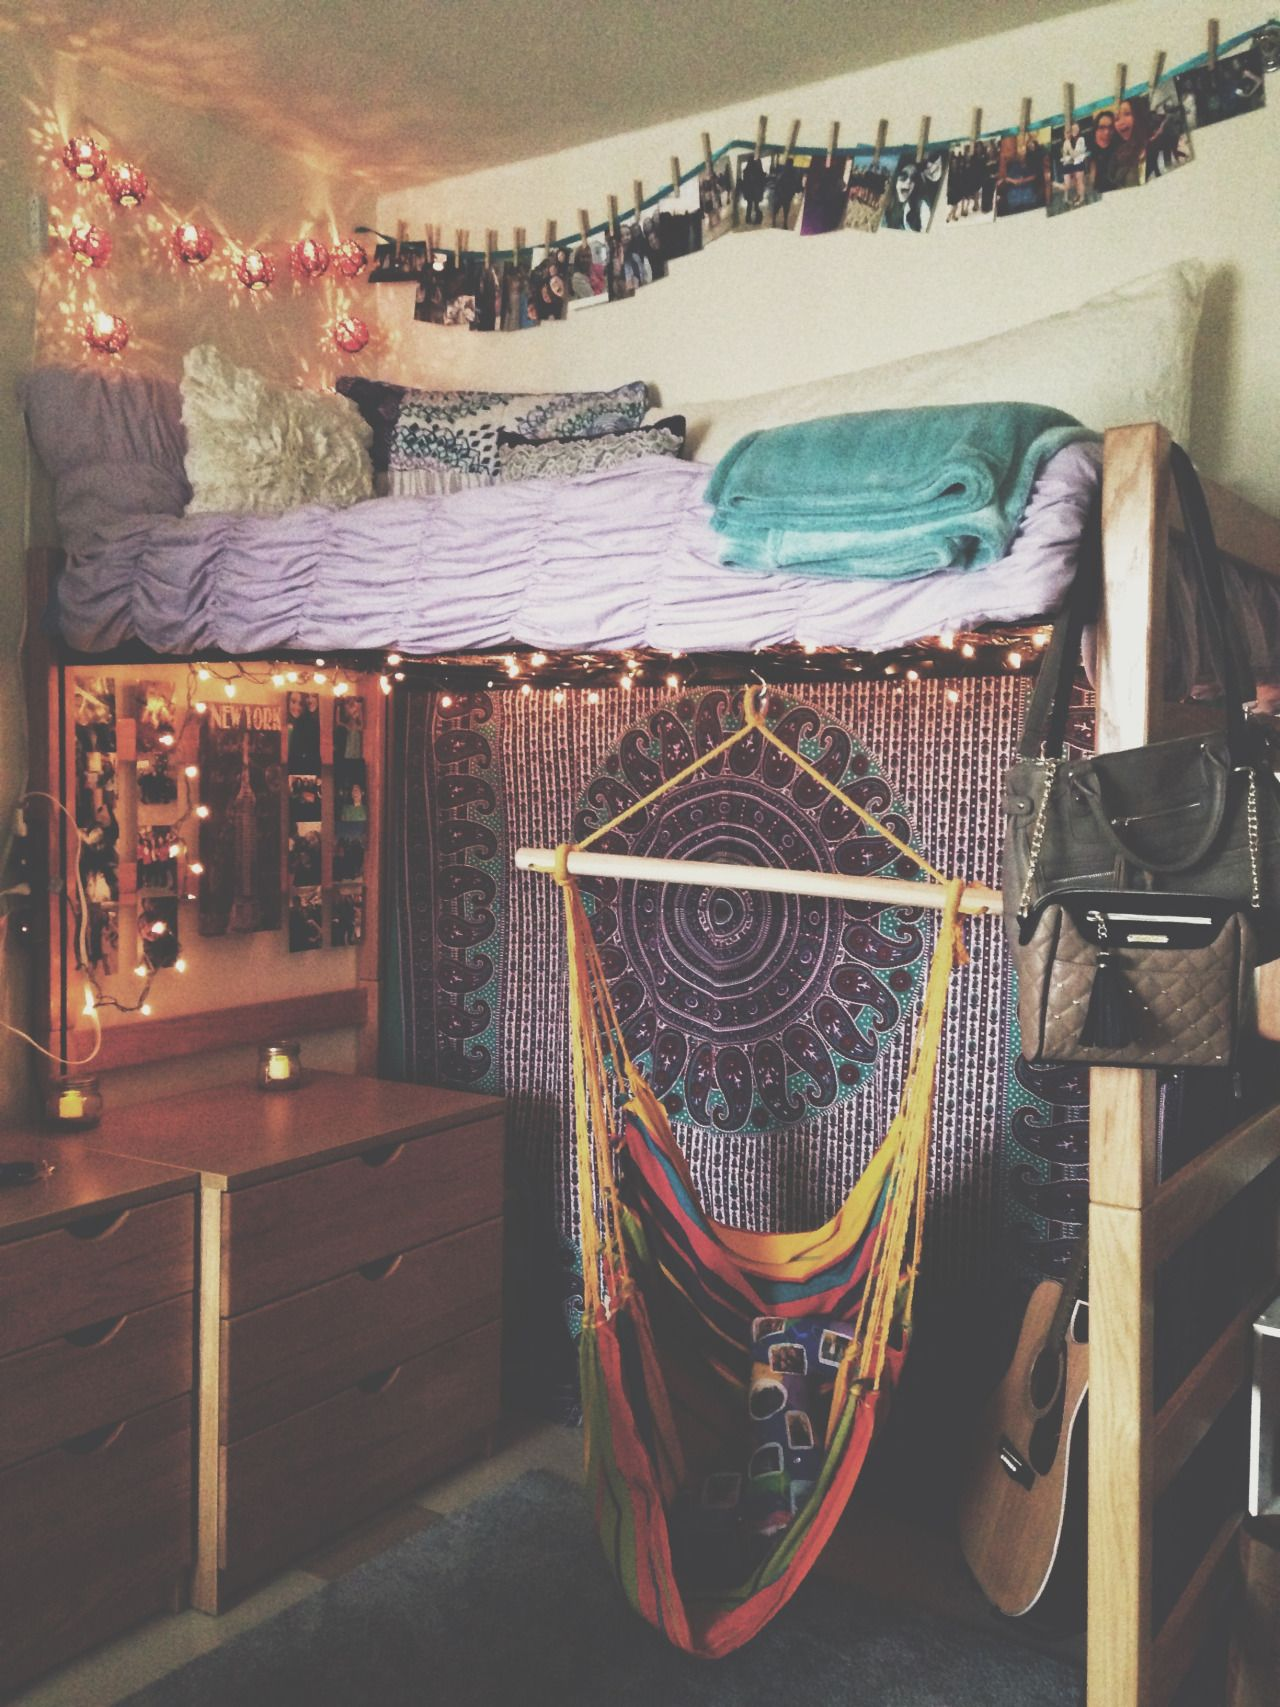 Lofted Dorm Bed With Hammock Swing